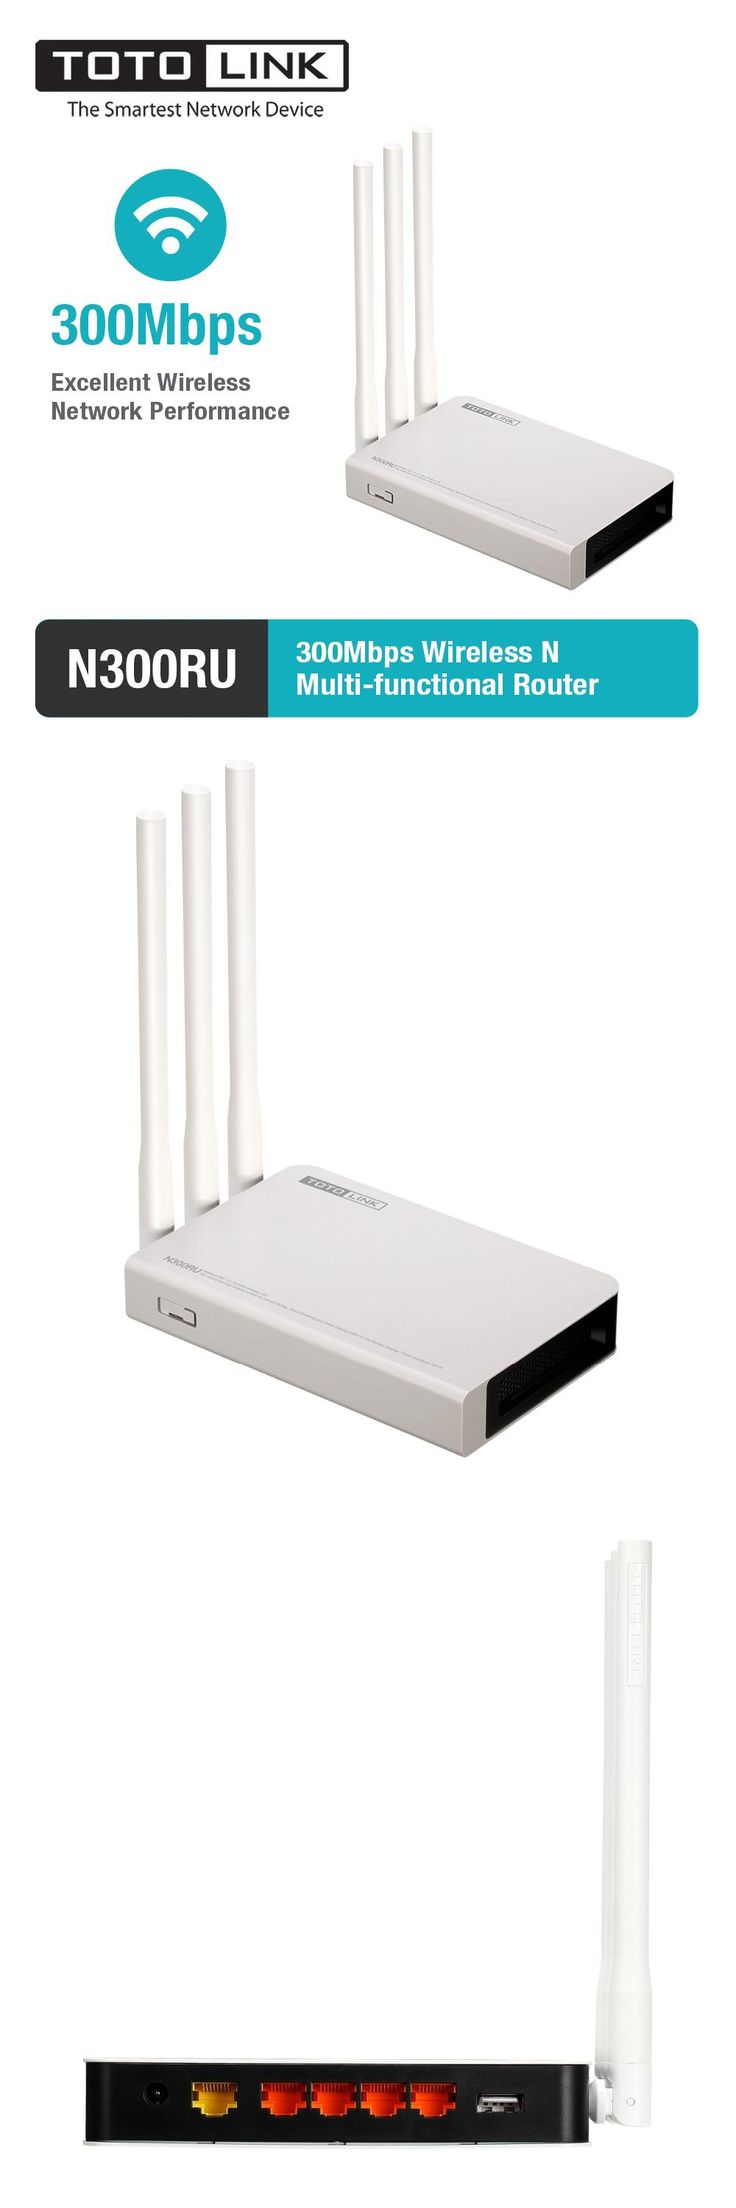 [Visit to Buy] TOTOLINK N300RU Wireless N 300Mbps WiFi Router WiFi Repeater with USB 2.0 Port Supports Printer Server/FTP Server #Advertisement